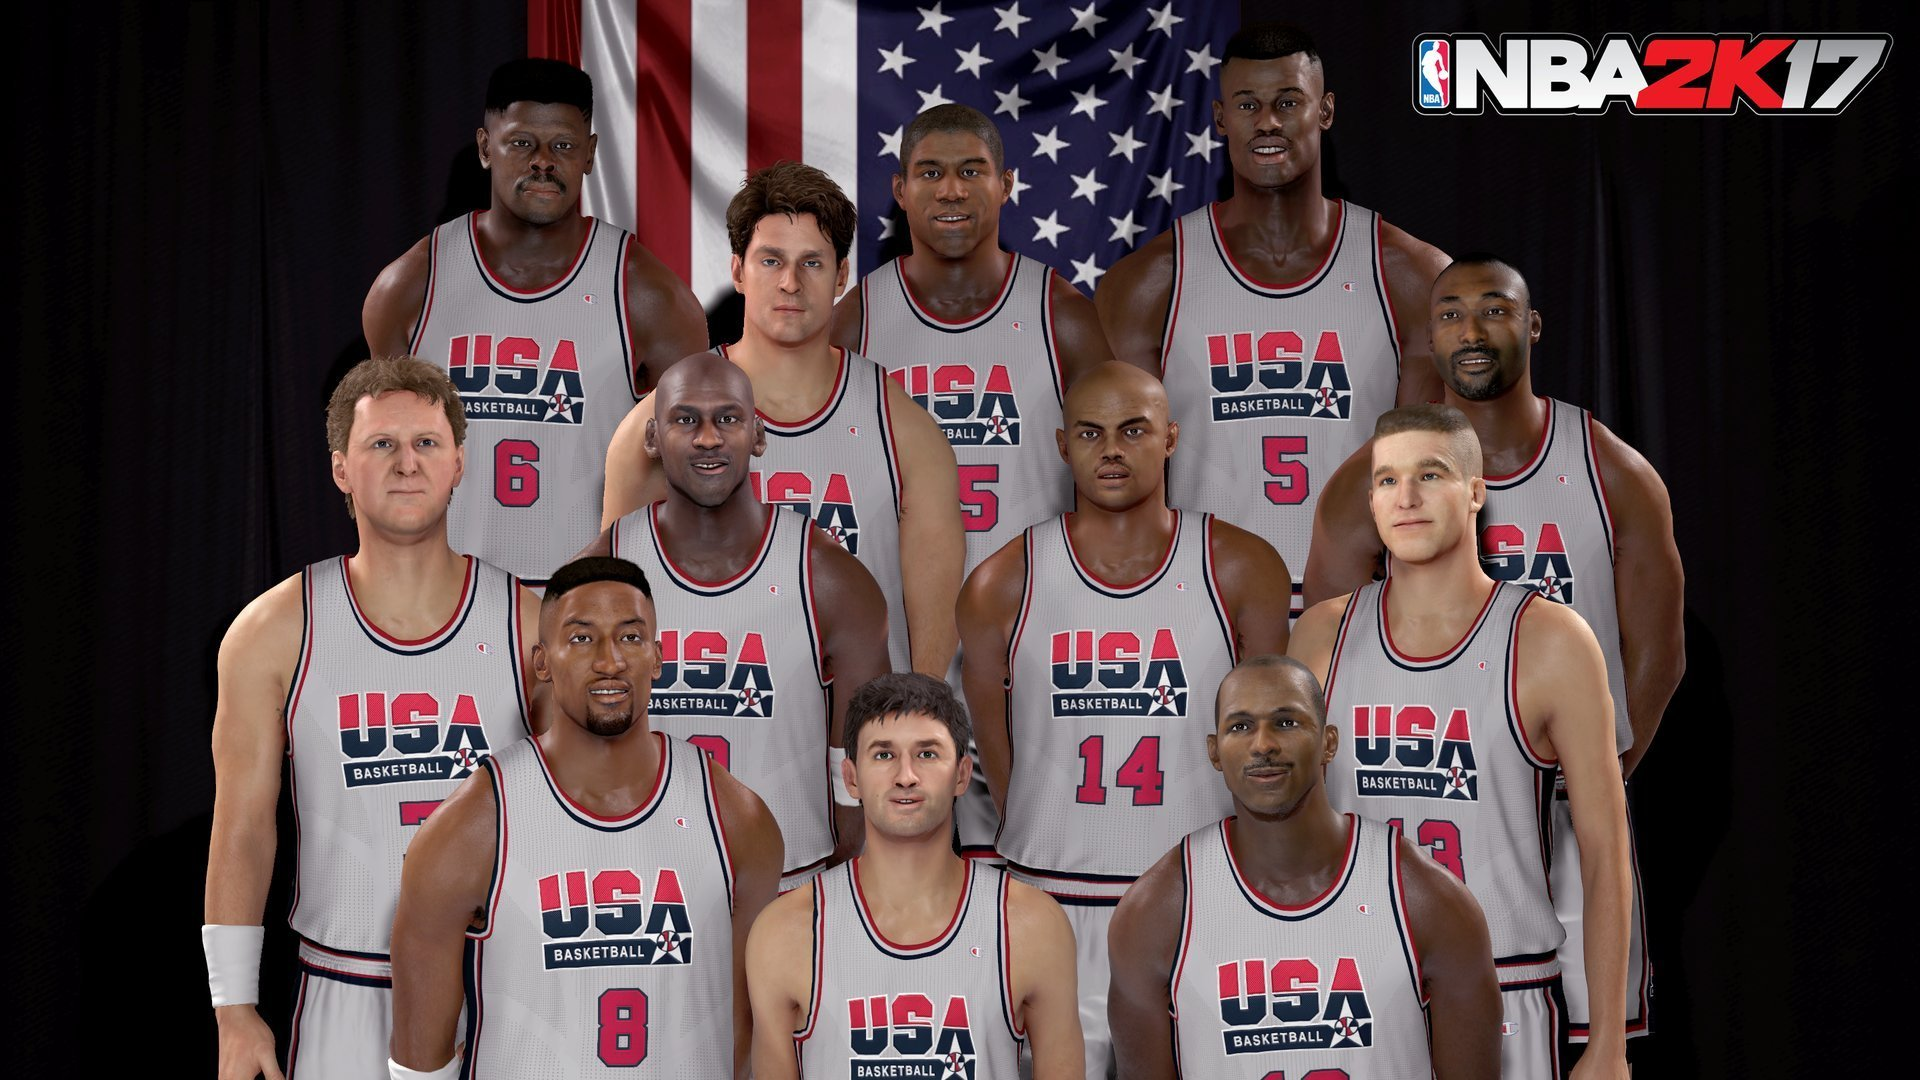 New video game botches Michael Jordan's face - Basketball ...